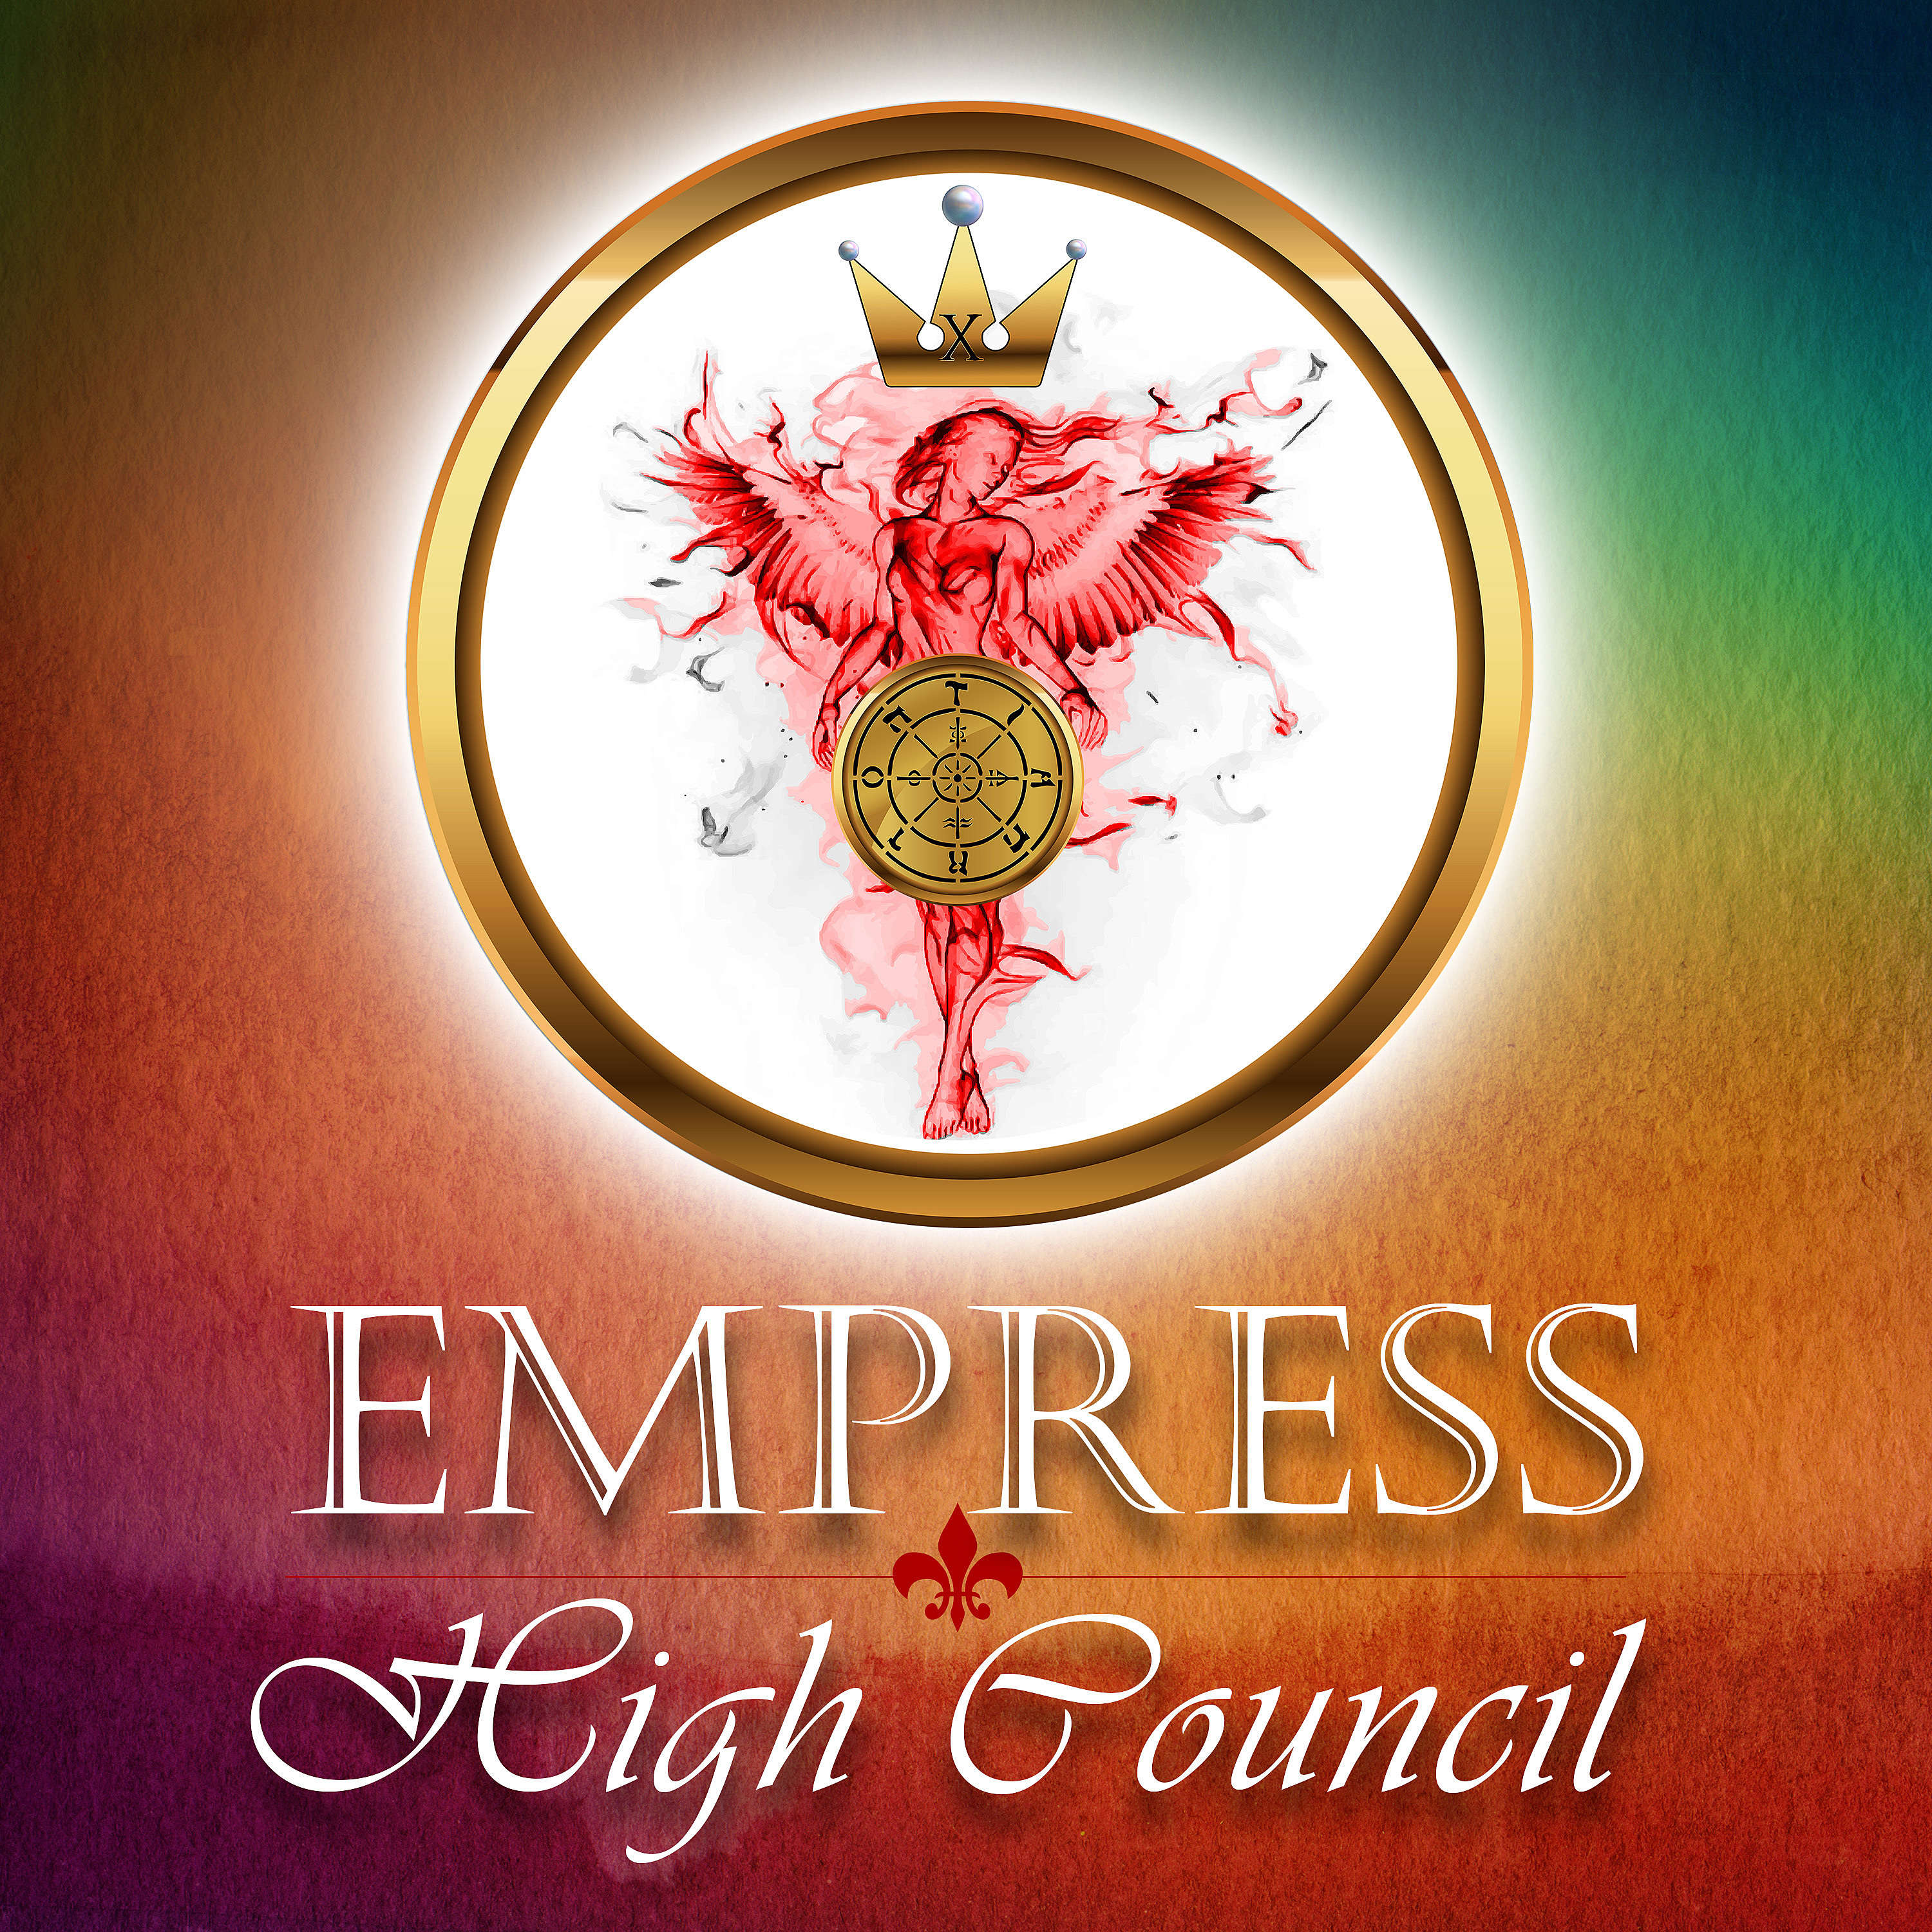 Empress High Council: Humanitarianism: To Give or Not to Give